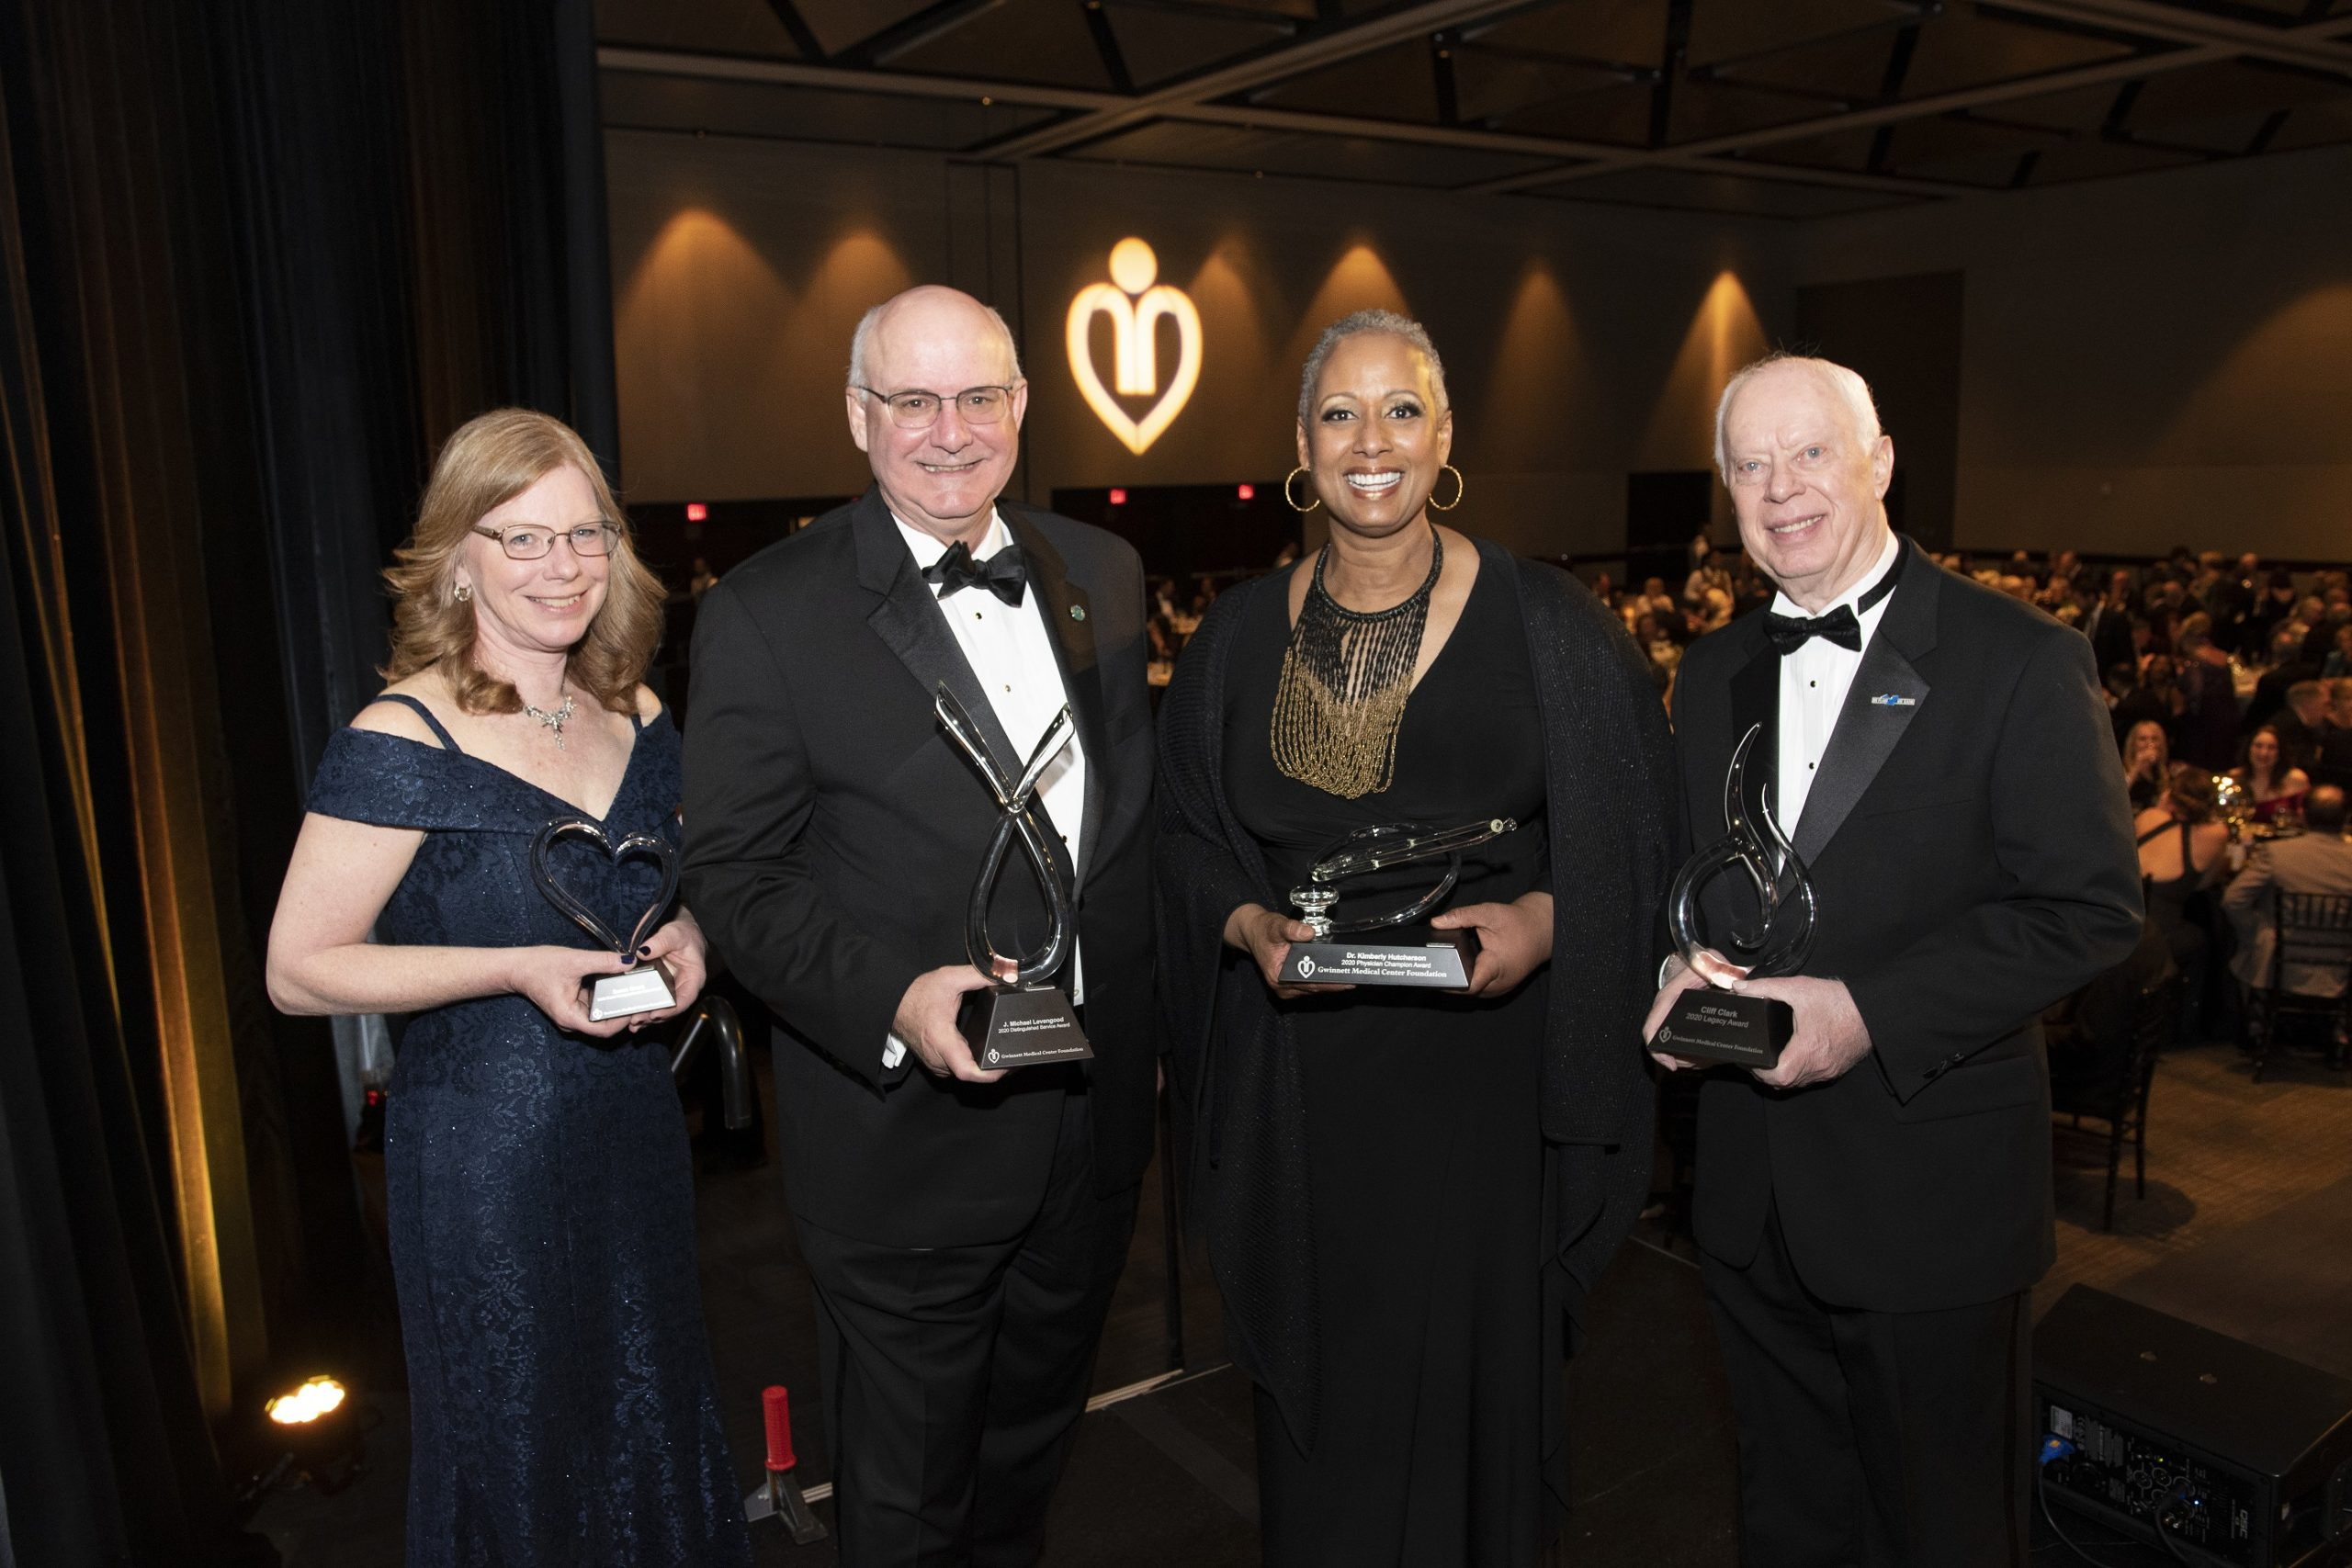 Gwinnett Medical Center Foundation Honors Leadership, Compassion And Philanthropy With Annual Awards